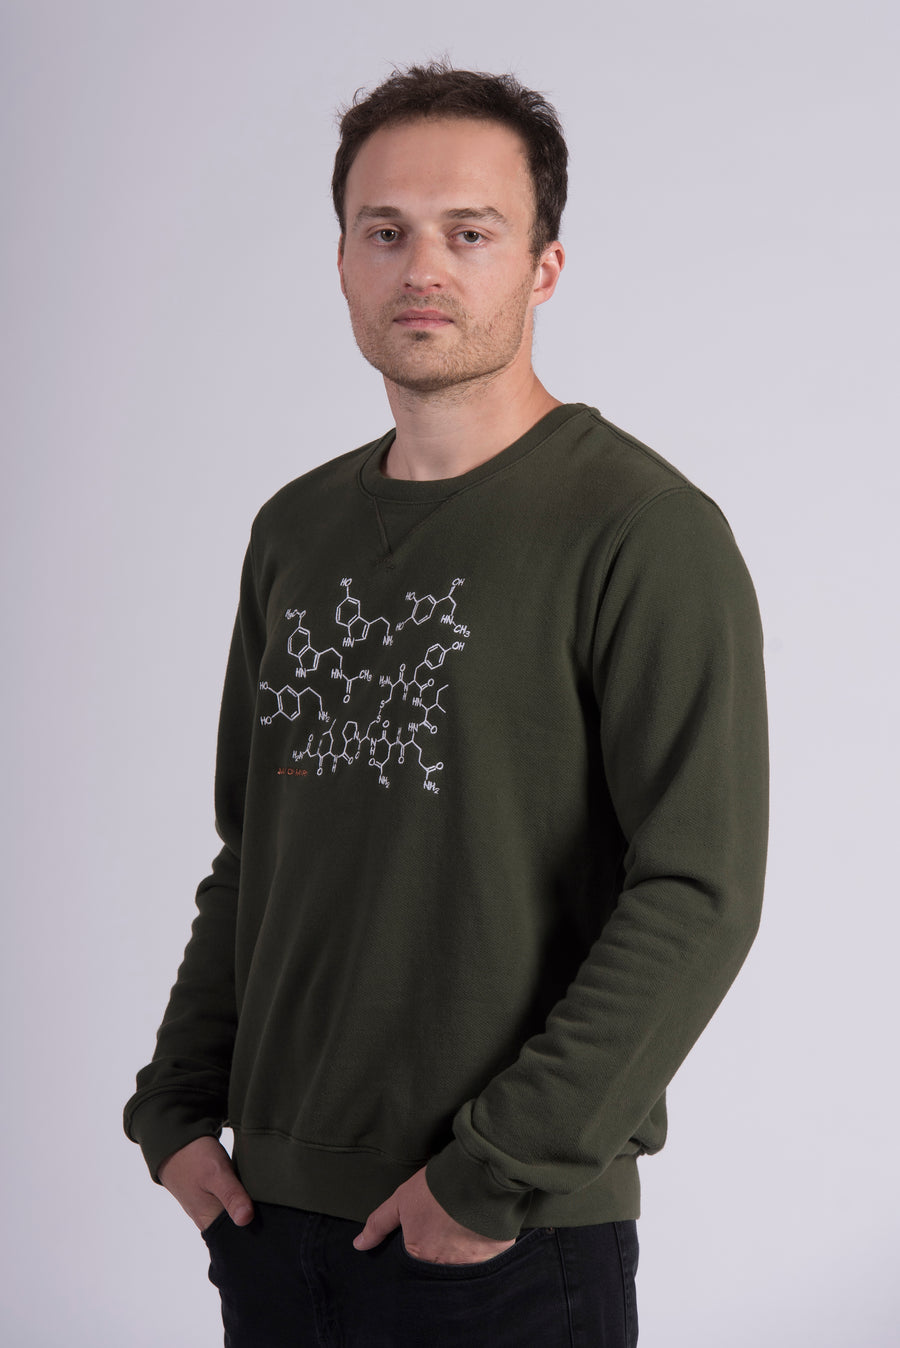 White Endocrine Embroidery Green Cotton Men's Sweatshirt Ethical